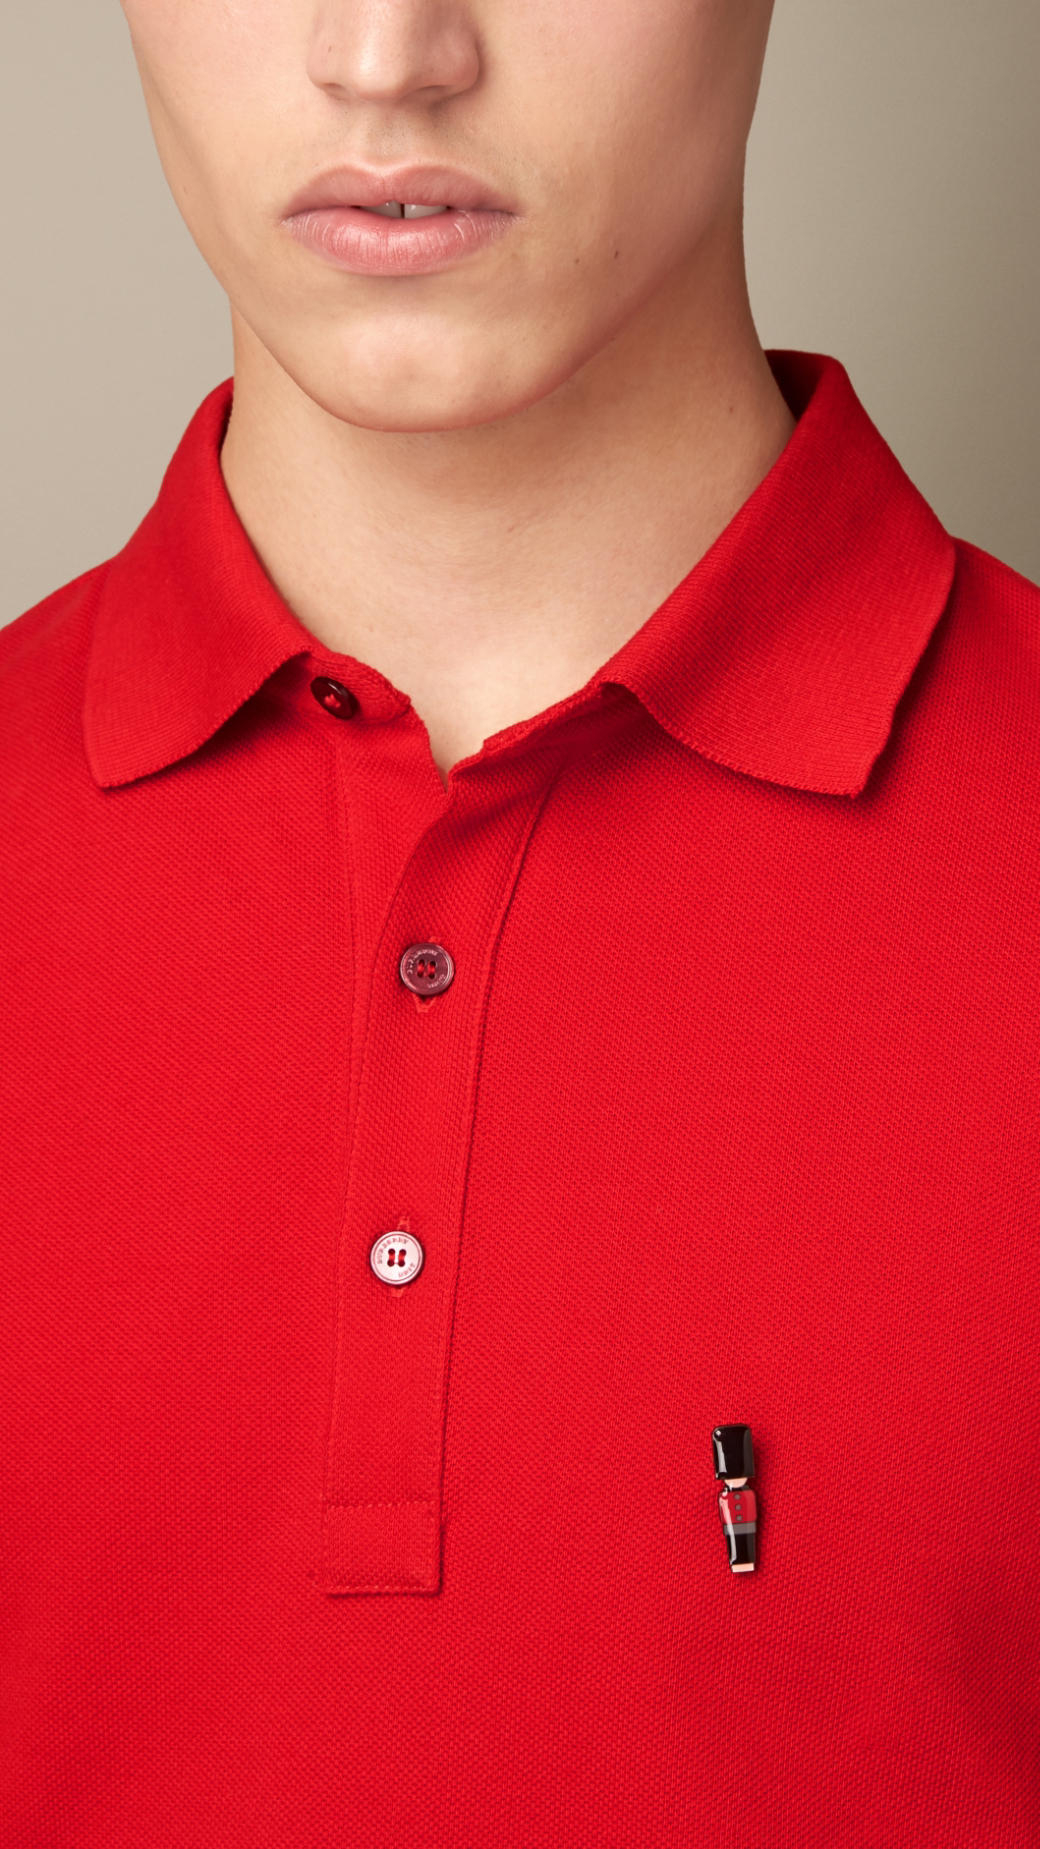 06c5b0cb Burberry Guardsman Pin Polo Shirt in Red for Men - Lyst